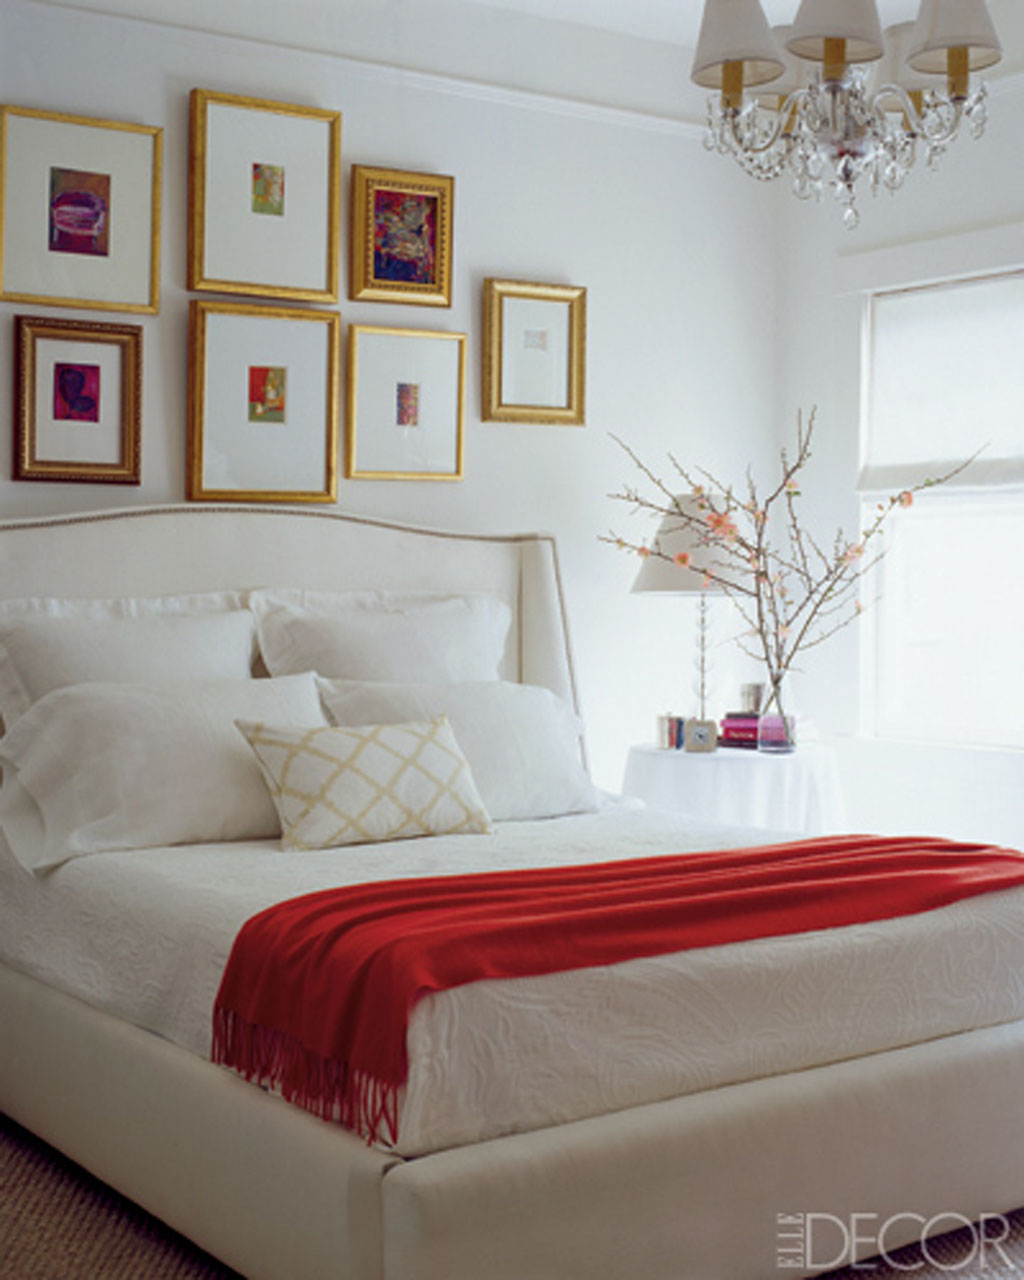 Black white and red bedroom ideas 5 small interior ideas for Bedroom picture ideas